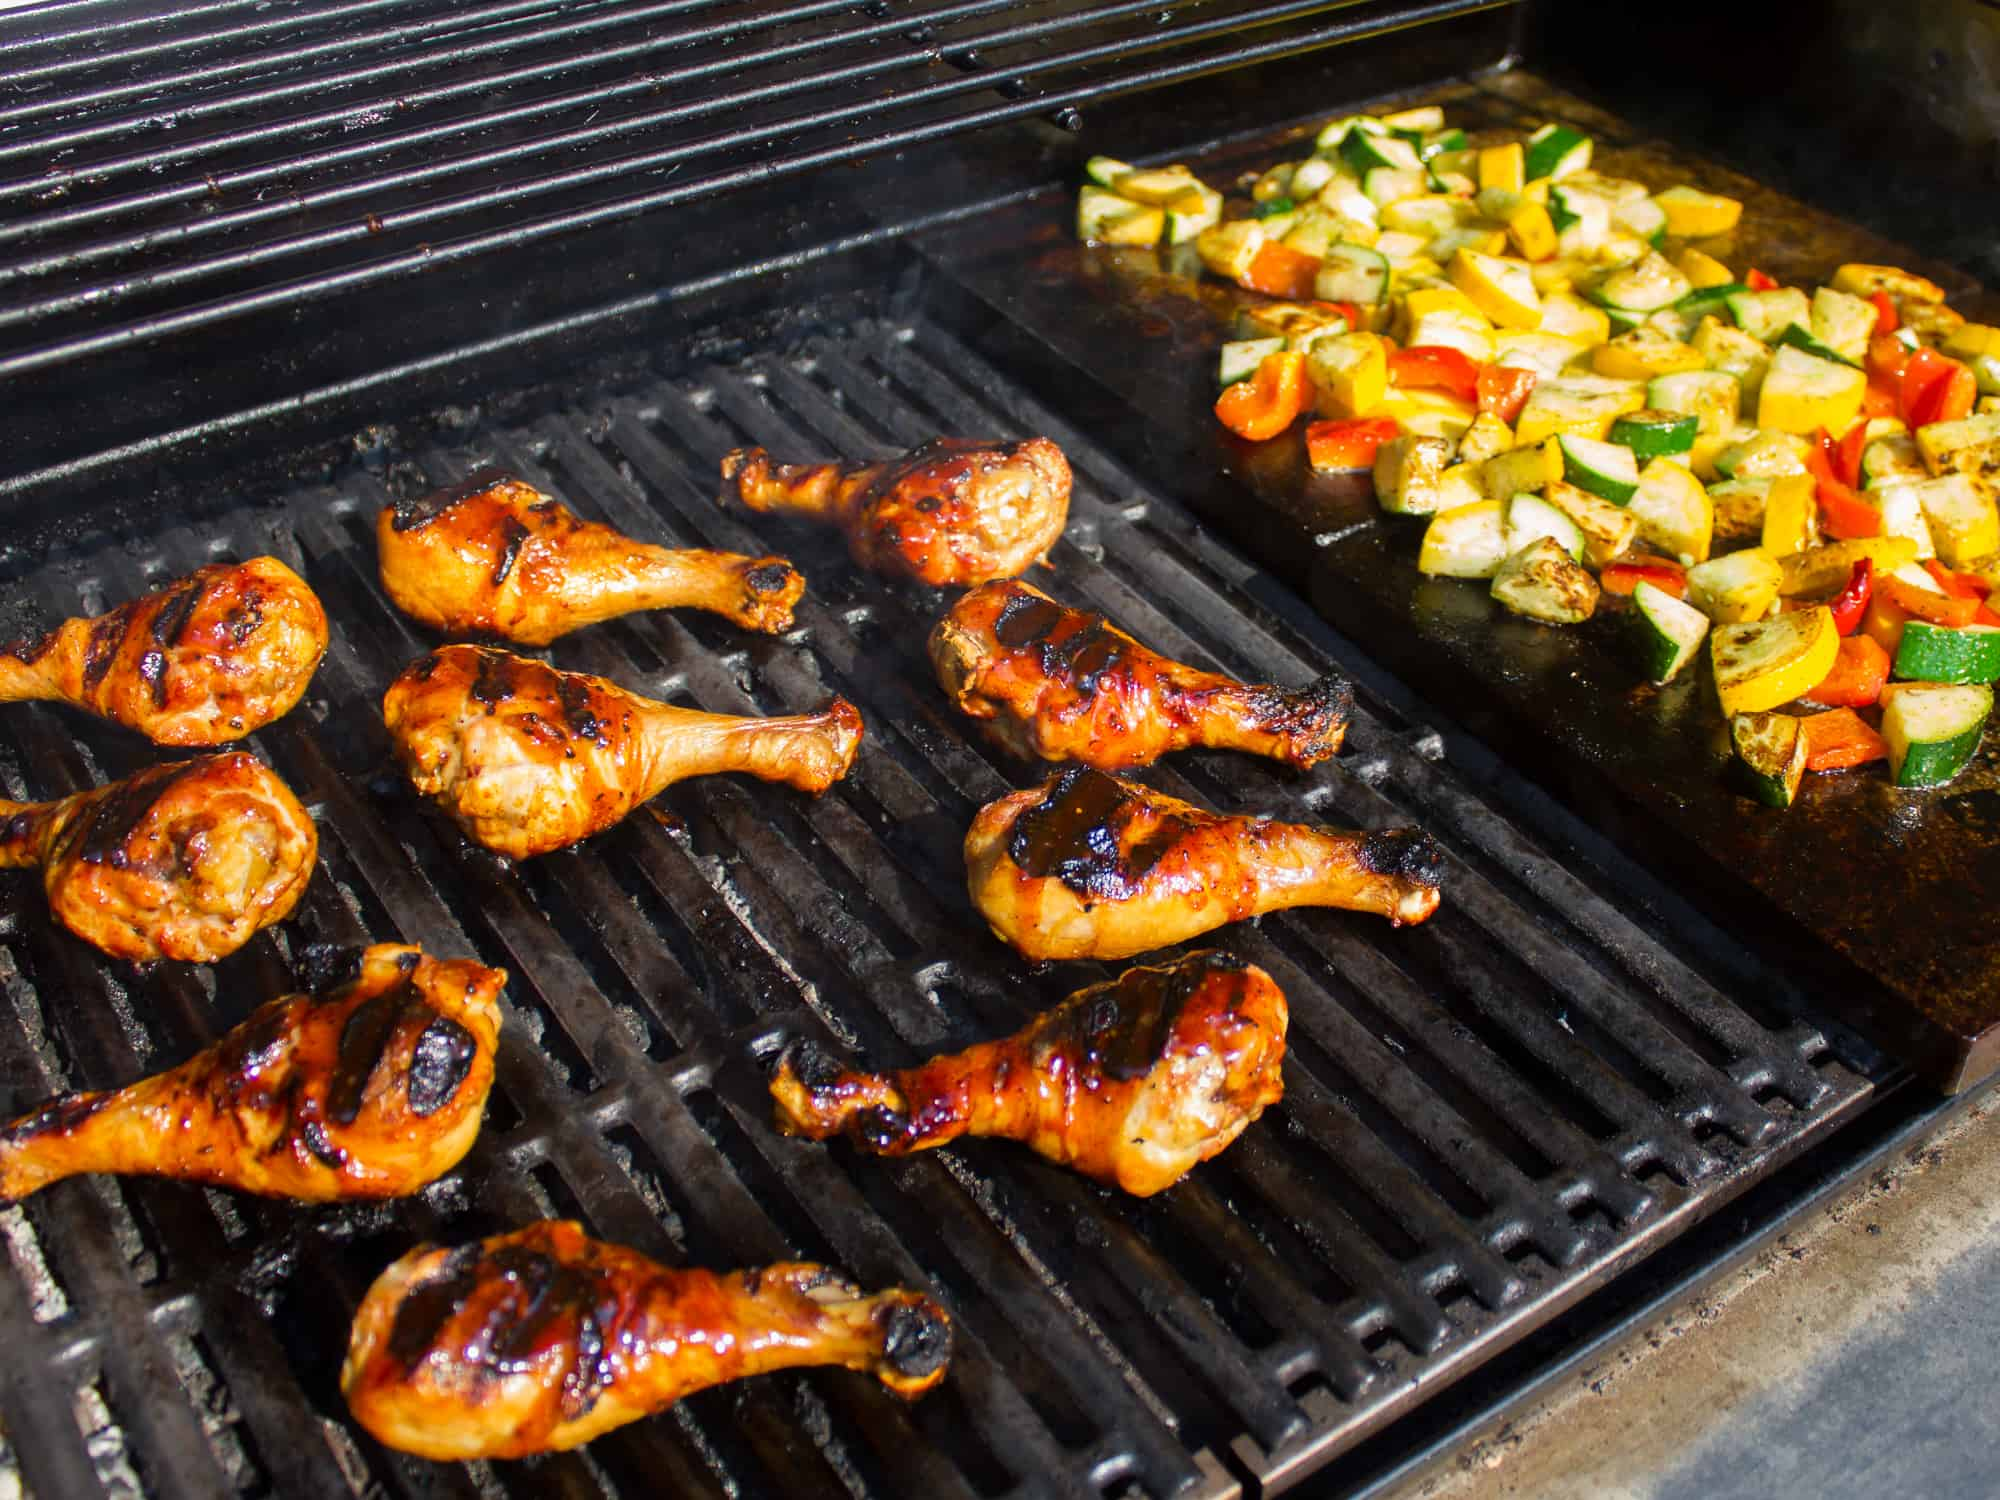 Grilled properly, chicken drumsticks are delicious and tender, with crispy, sticky and saucy skin. Here are some simple suggestions for grilling drumsticks.